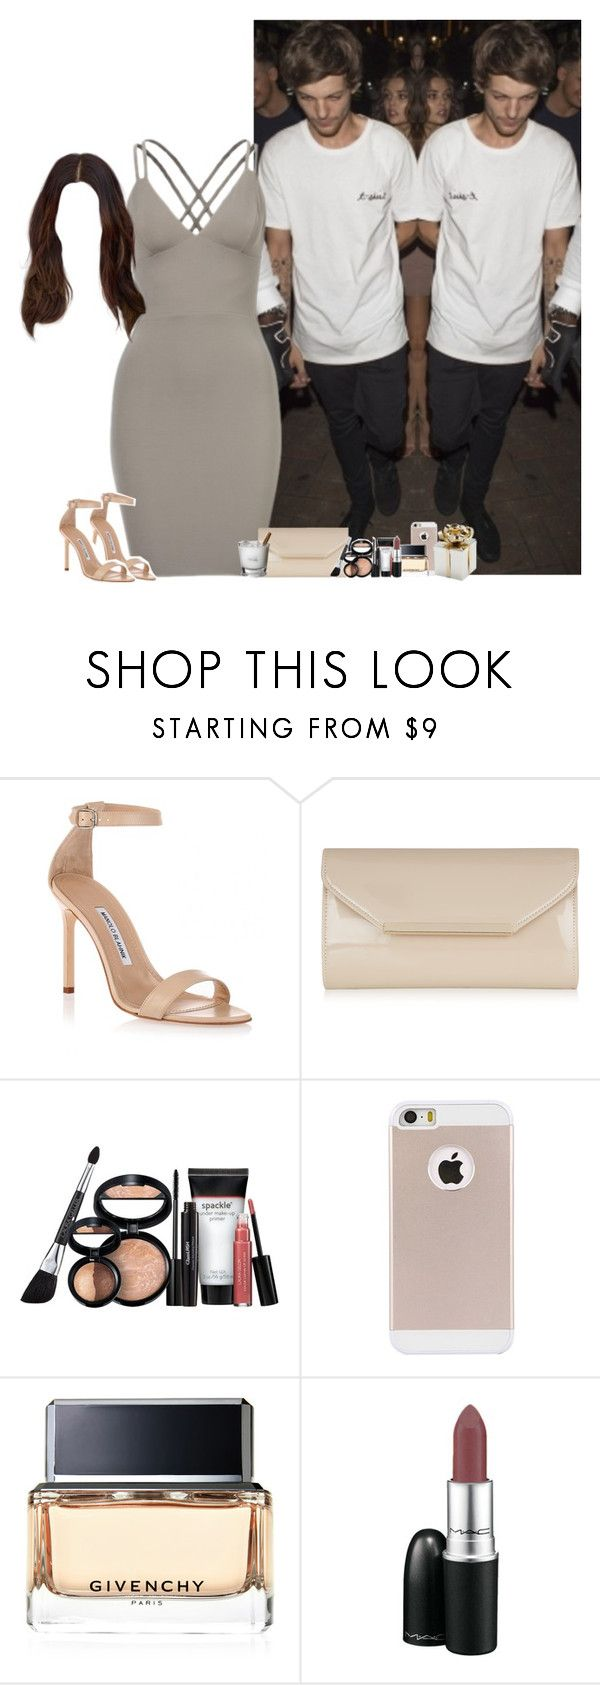 """""""Niall's birthday party with Louis"""" by fxrever-isnt-for-everyone ❤ liked on Polyvore featuring Manolo Blahnik, Accessorize, Laura Geller, Givenchy and louistomlinson"""